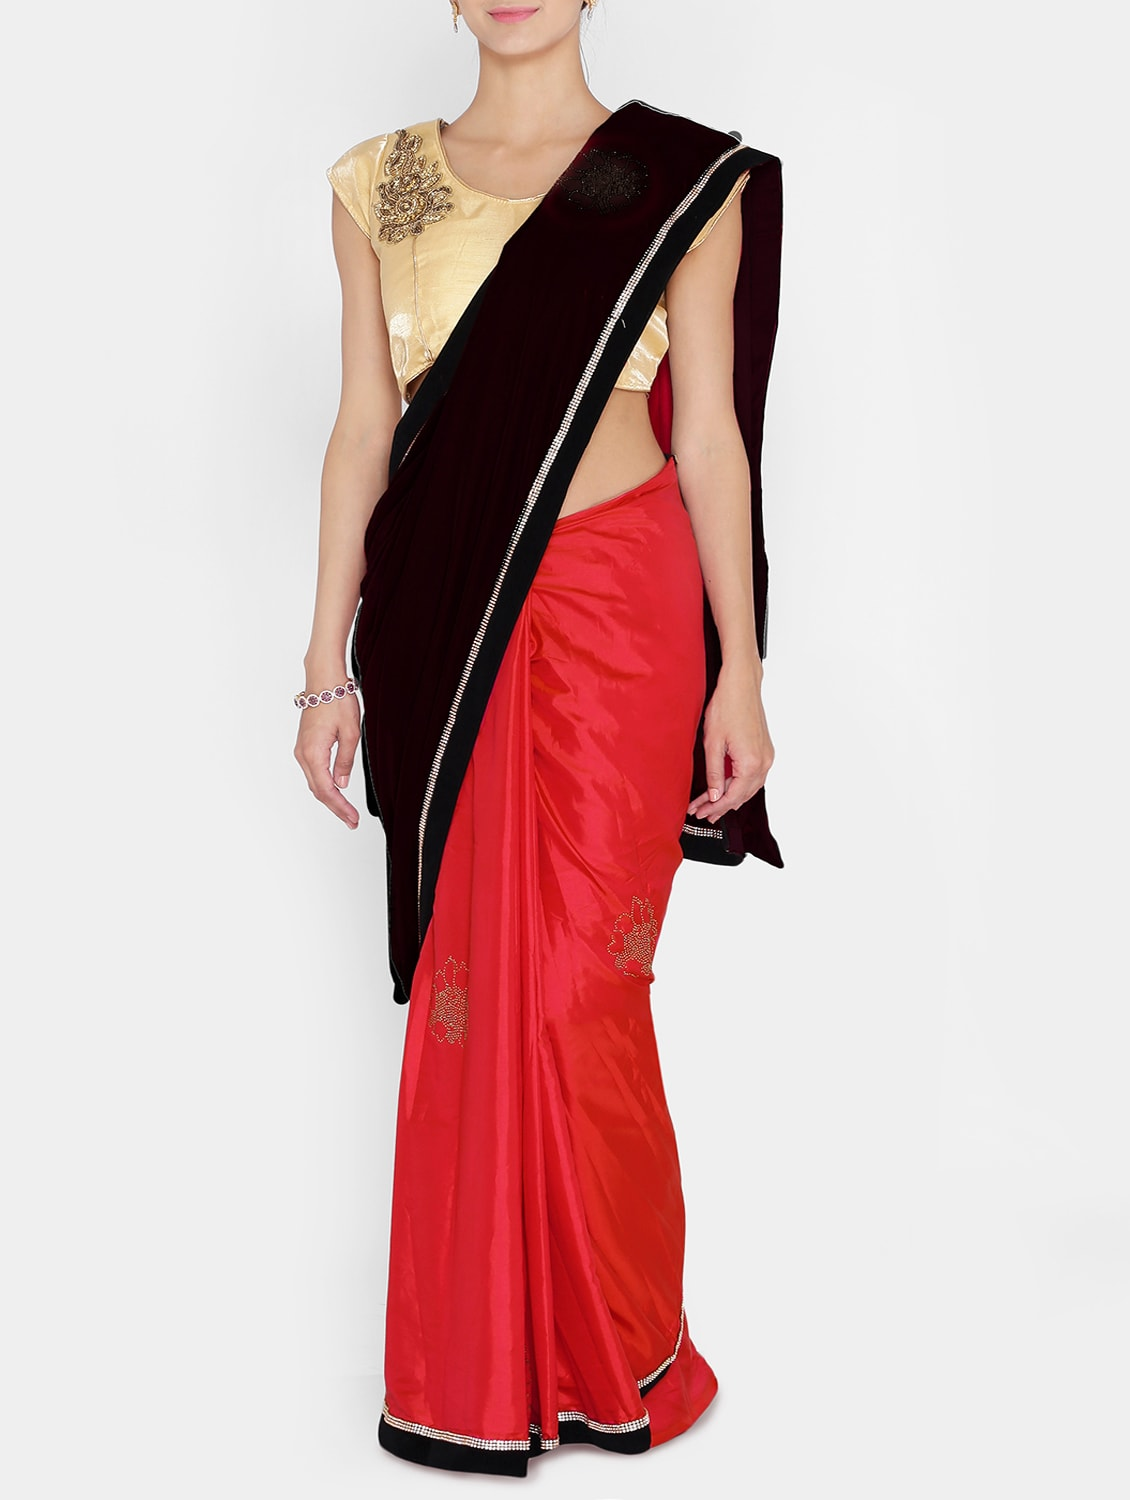 3c66067d429281 Buy Black Velvet Half   Half Saree With Blouse for Women from Chhabra555  for ₹2301 at 61% off